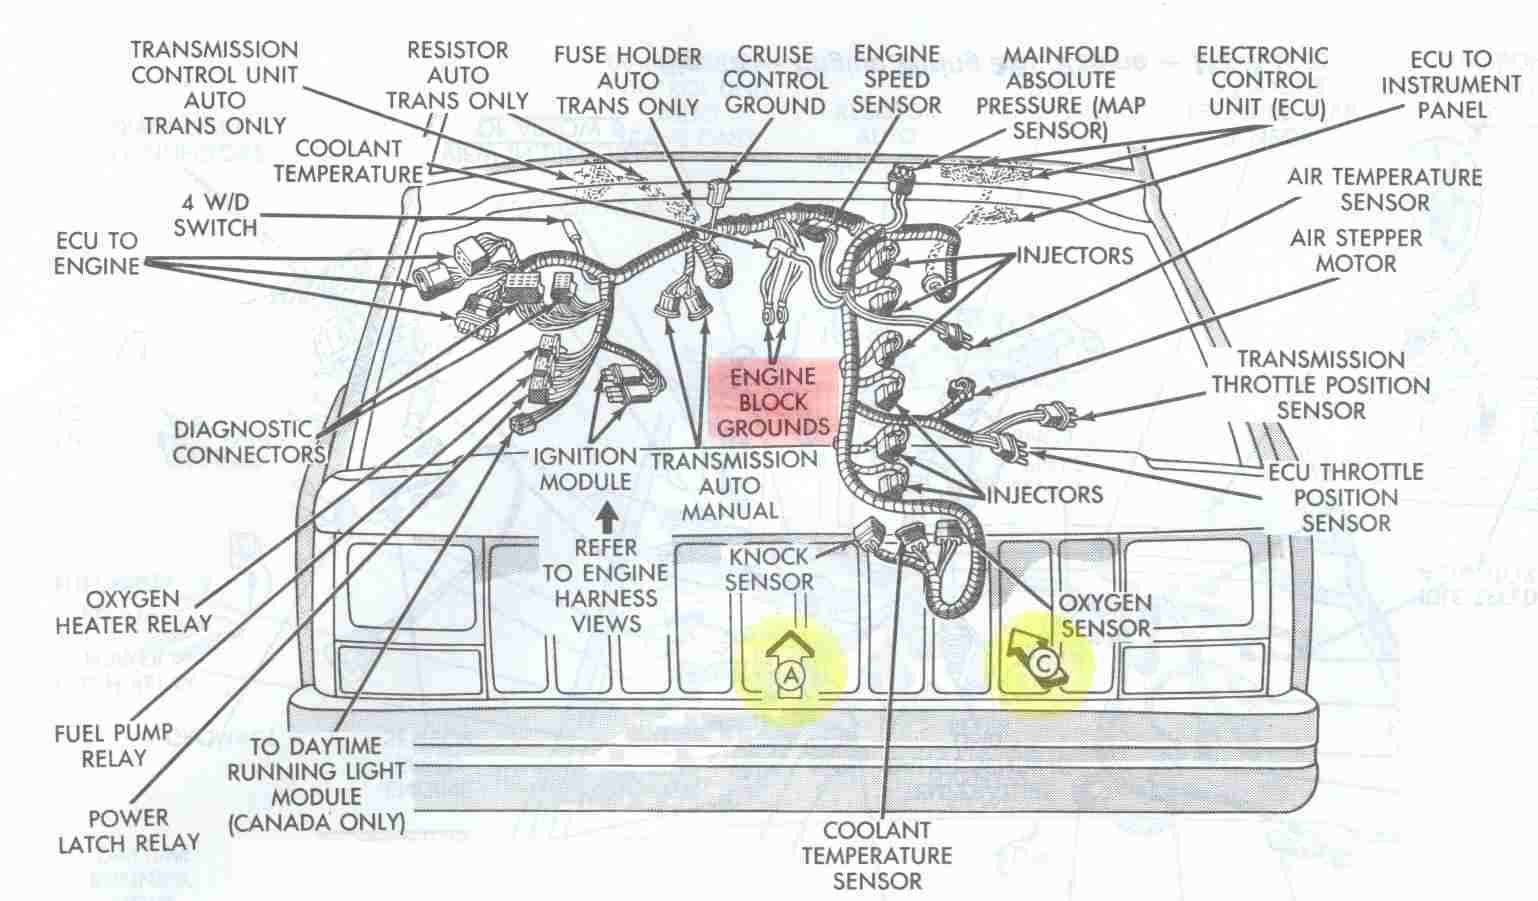 ab0134a7d9e021431187af597eb4aeca engine bay schematic showing major electrical ground points for wiring diagram 1997 jeep grand cherokee at reclaimingppi.co